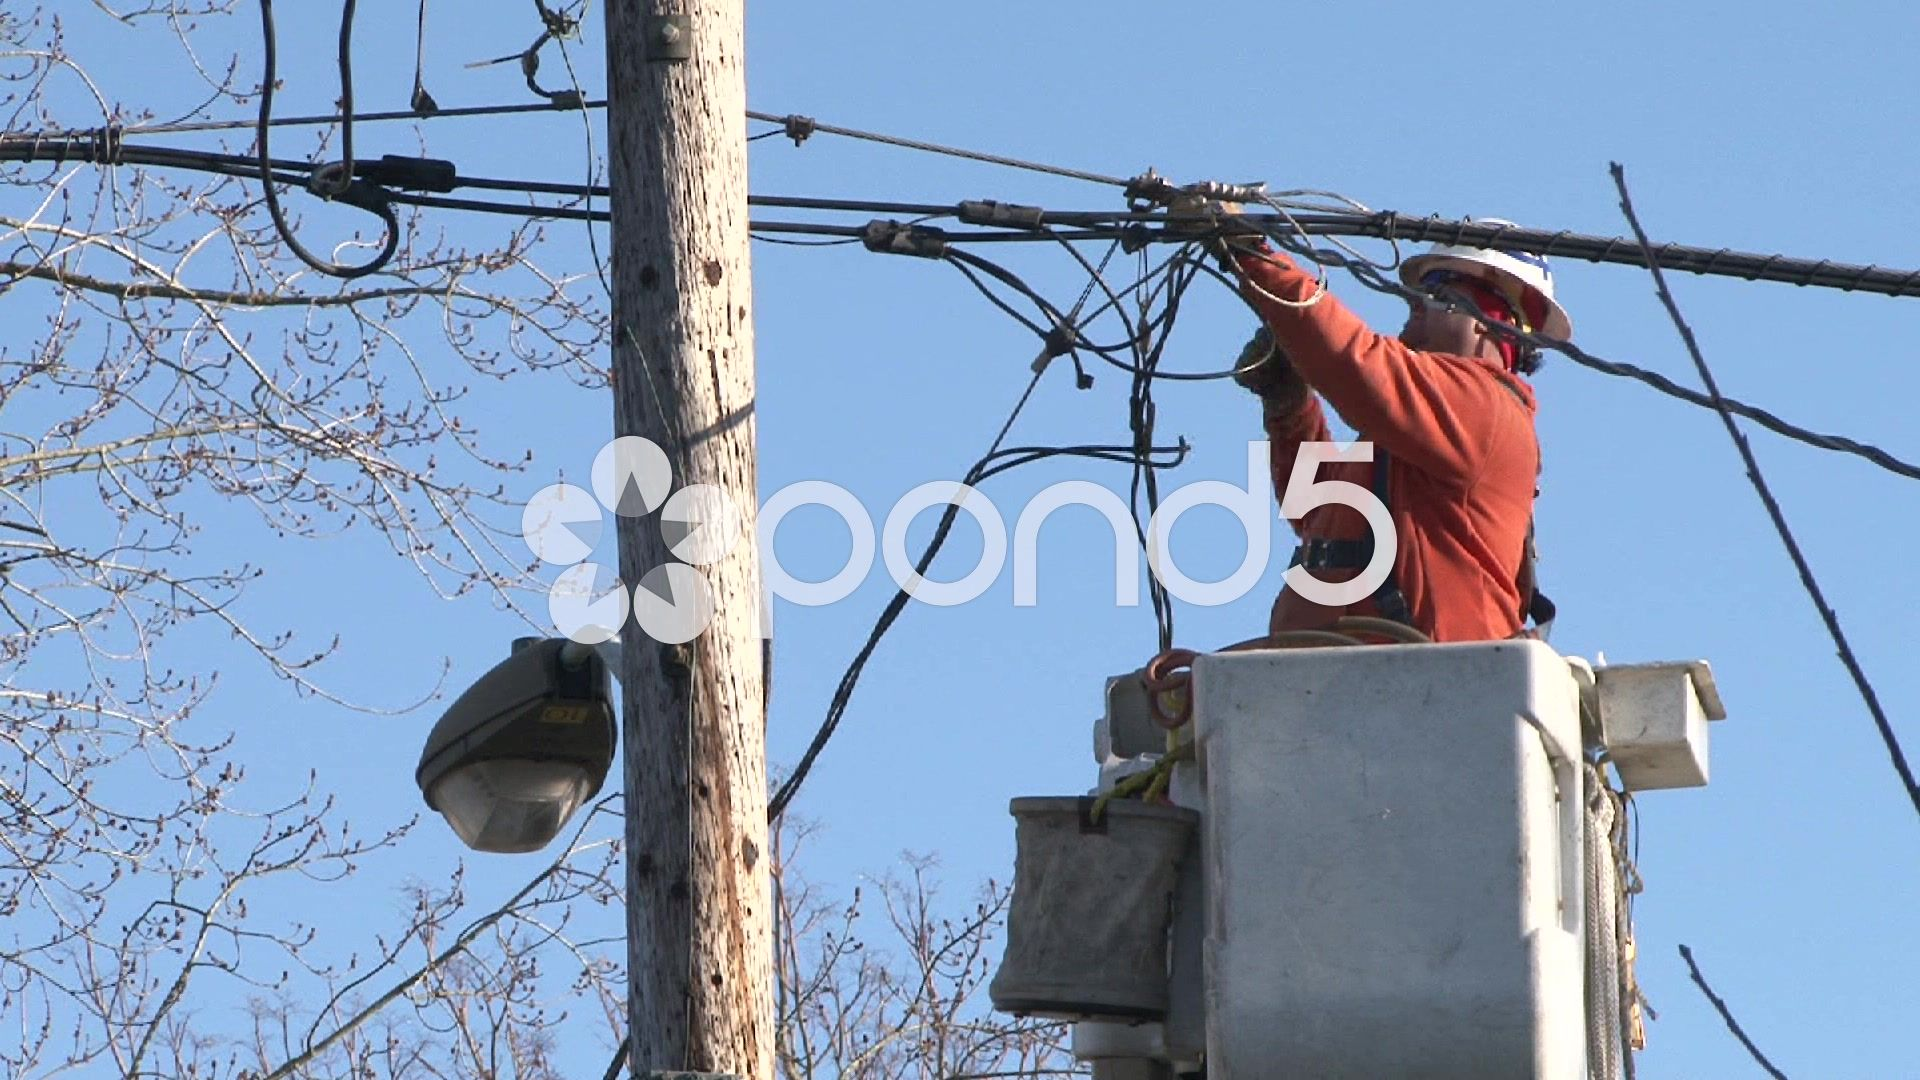 Electrician Working On Power Lines Stock Footage,Power